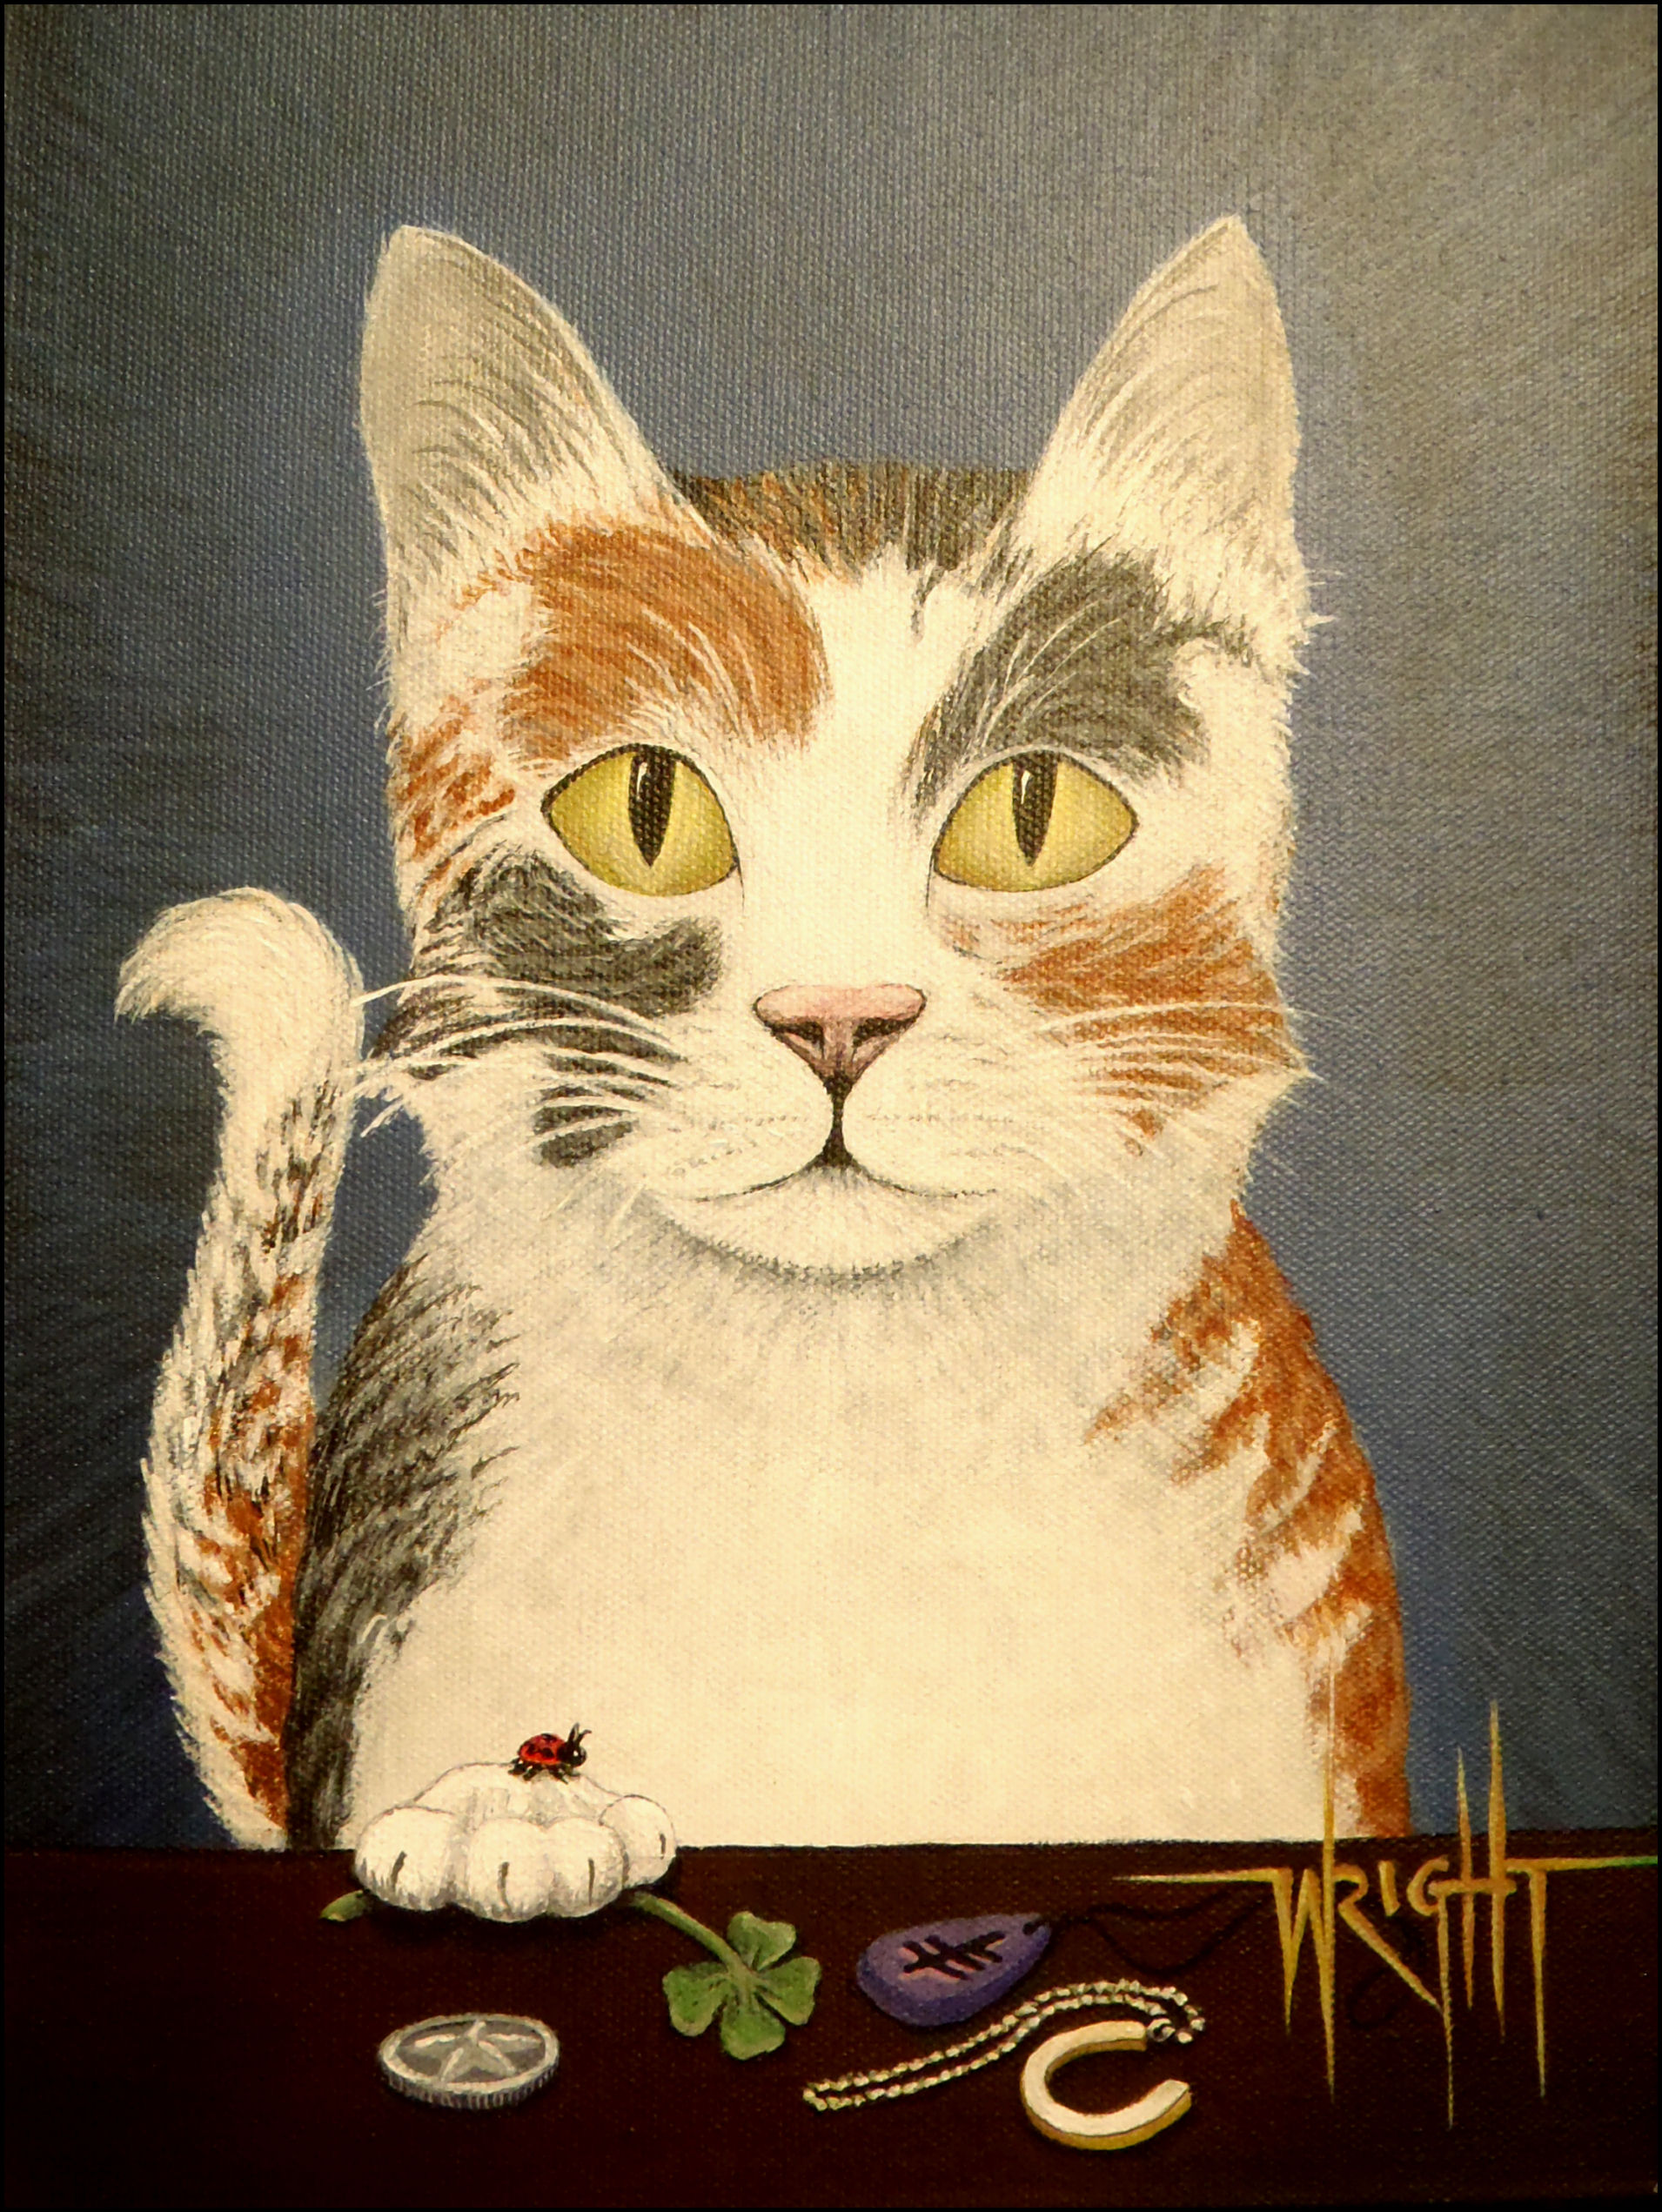 Cat Painting by Walt Wright